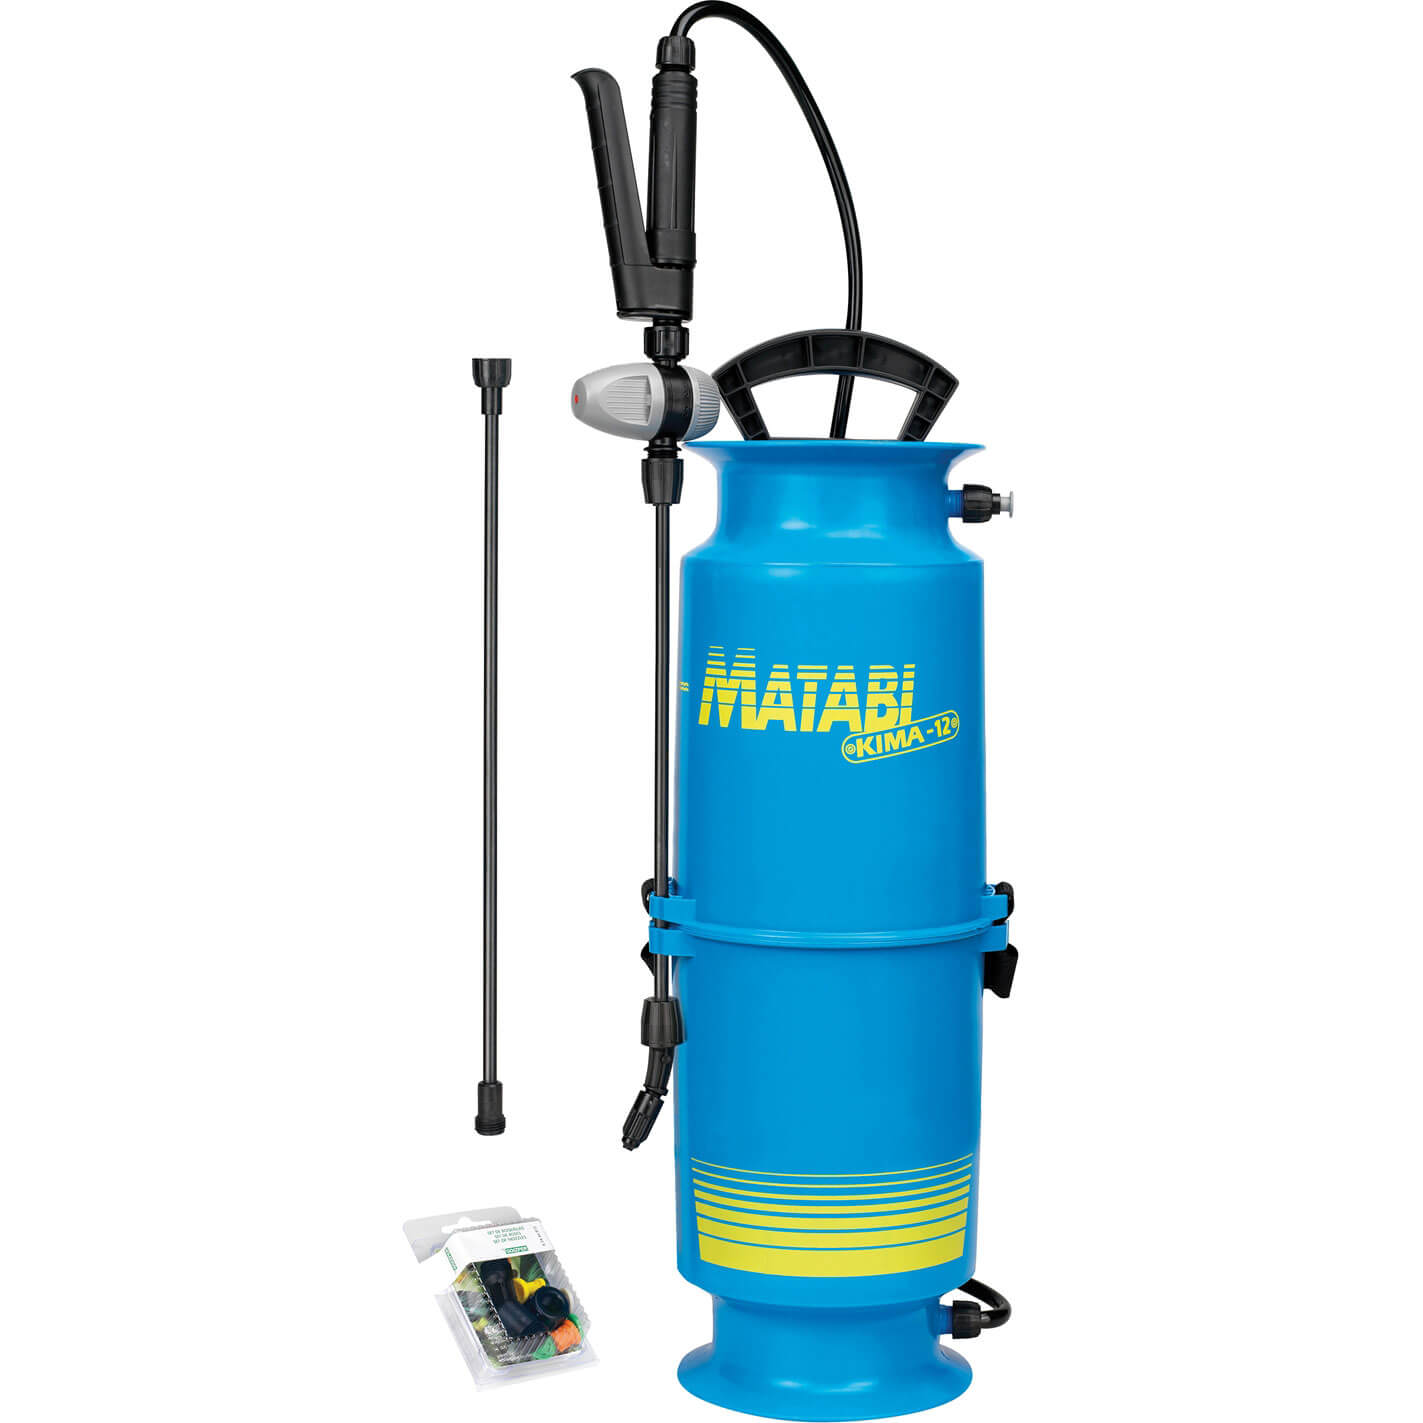 Image of Matabi Kima 12 Sprayer + Pressure Regulator 8l